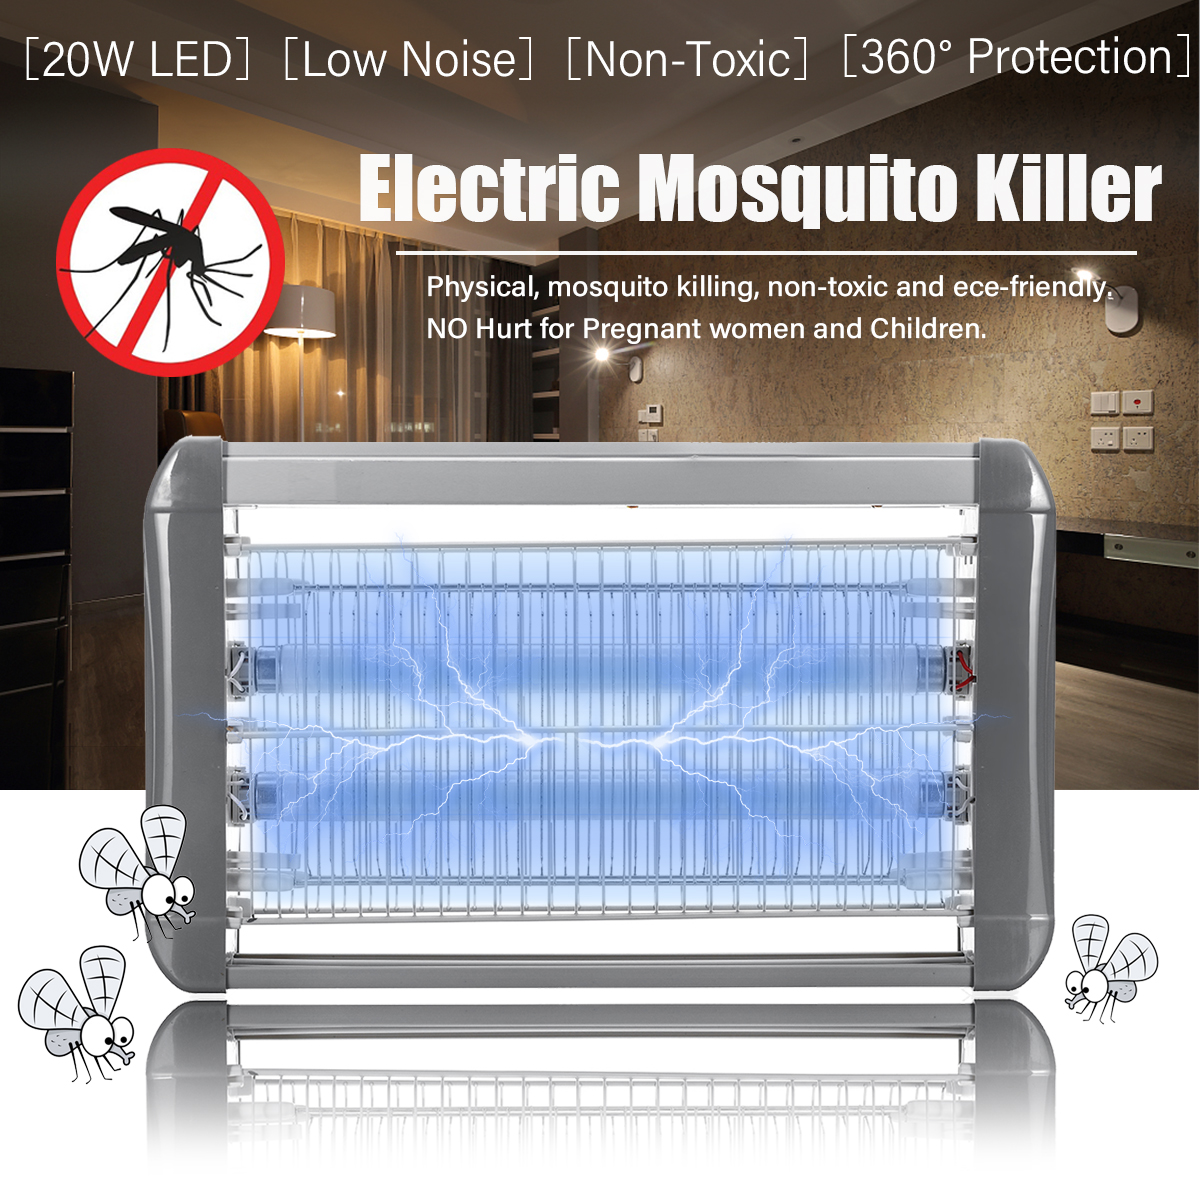 20W 220V Electric Mosquito Killer Lamp Indoor LED Light Bedroom Outdoor Garden Anti Insect Killing Wasp Bug Fly Zapper Traps20W 220V Electric Mosquito Killer Lamp Indoor LED Light Bedroom Outdoor Garden Anti Insect Killing Wasp Bug Fly Zapper Traps